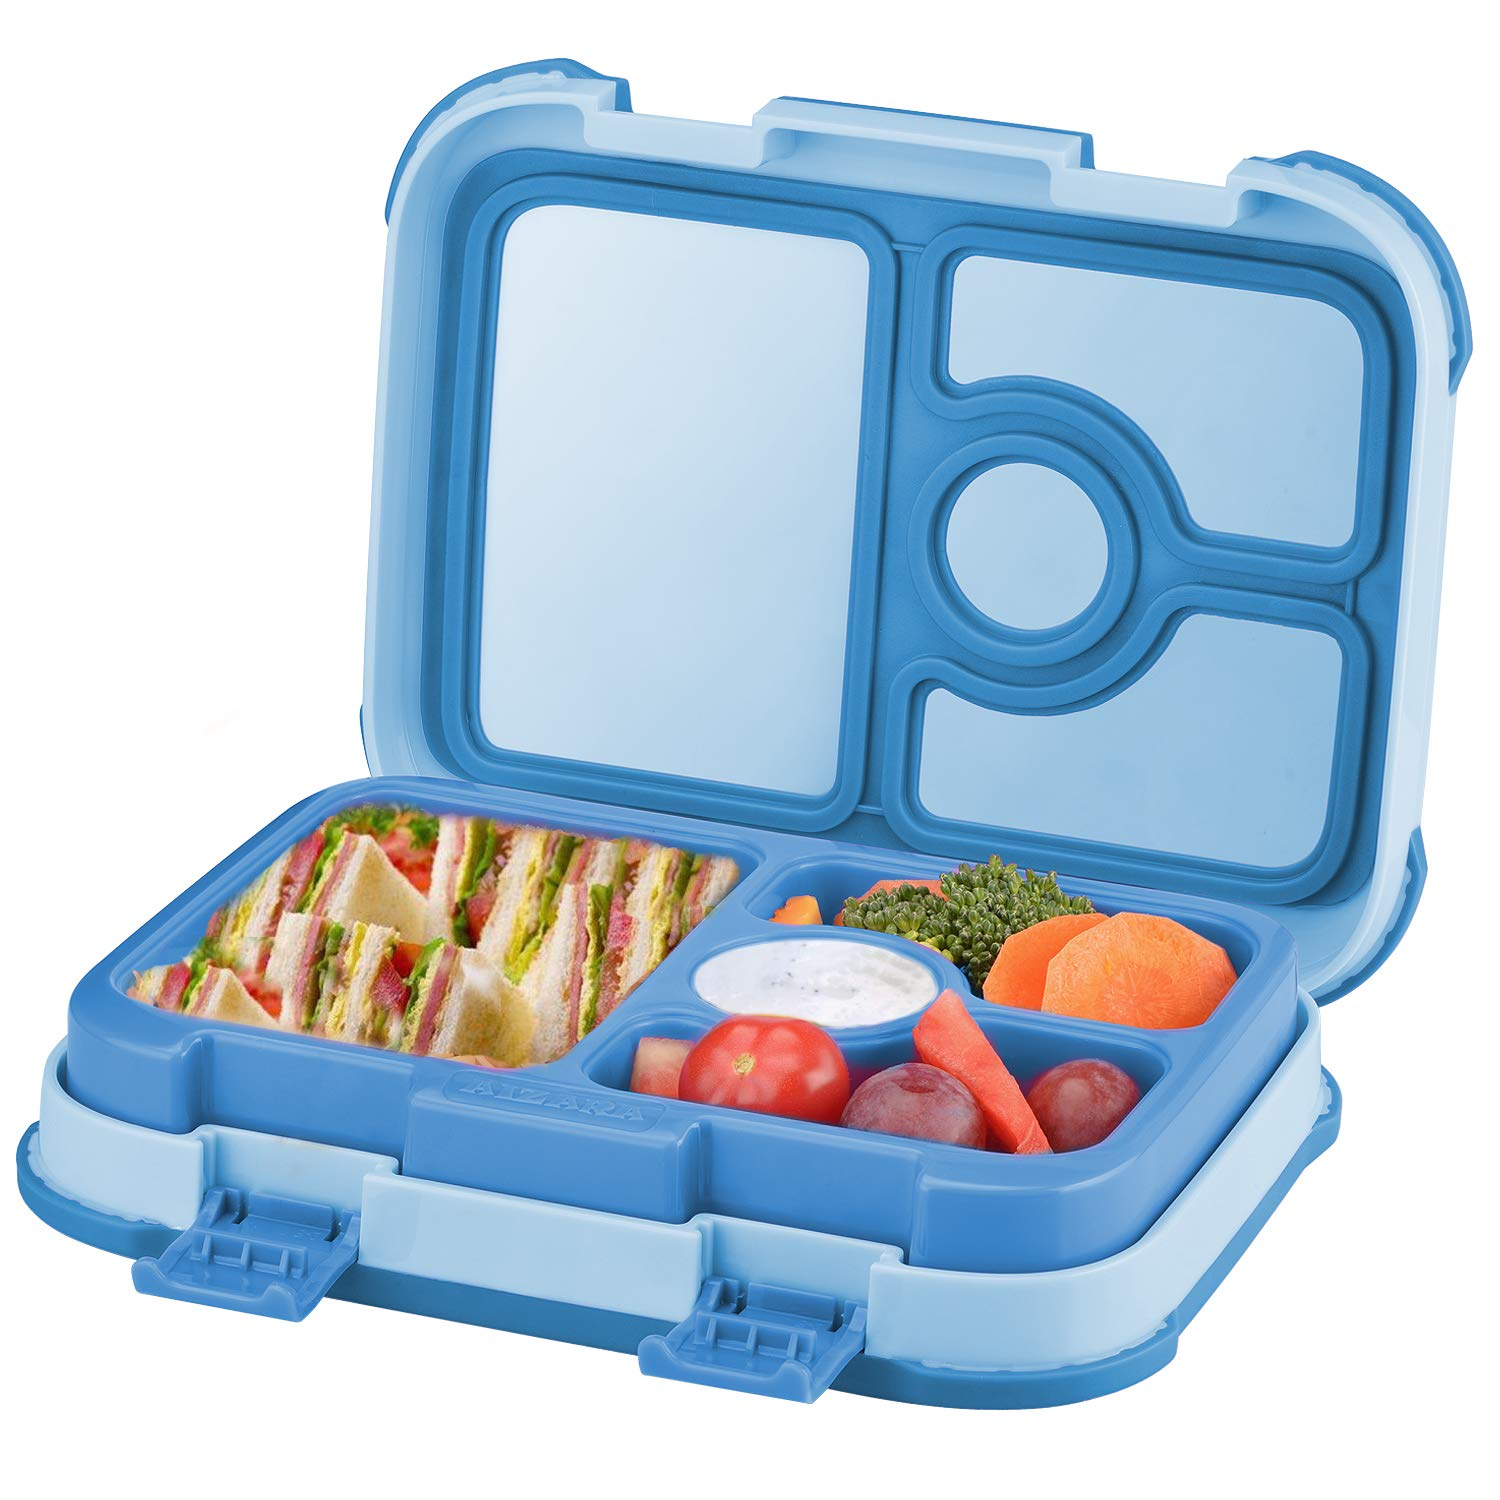 Leakproof Kids Lunch Box | 4-Compartment Bento Box for Kids | BPA-Free | School Lunch Container for Boys Girls | Children Travel On-the-Go Meal and Snack Packing Containers | Blue by LROZA